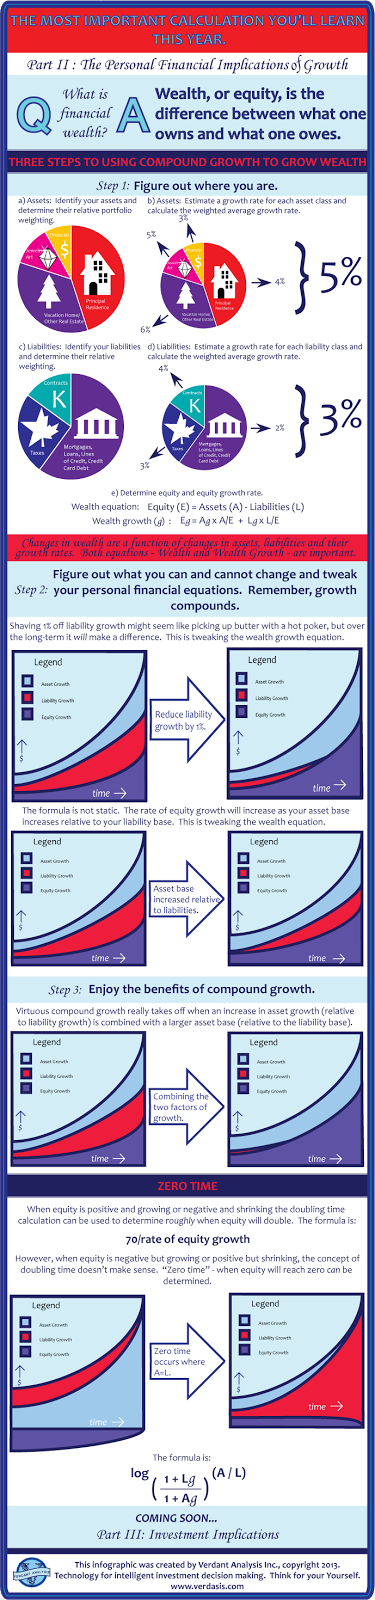 personal financial implications of growth infographic